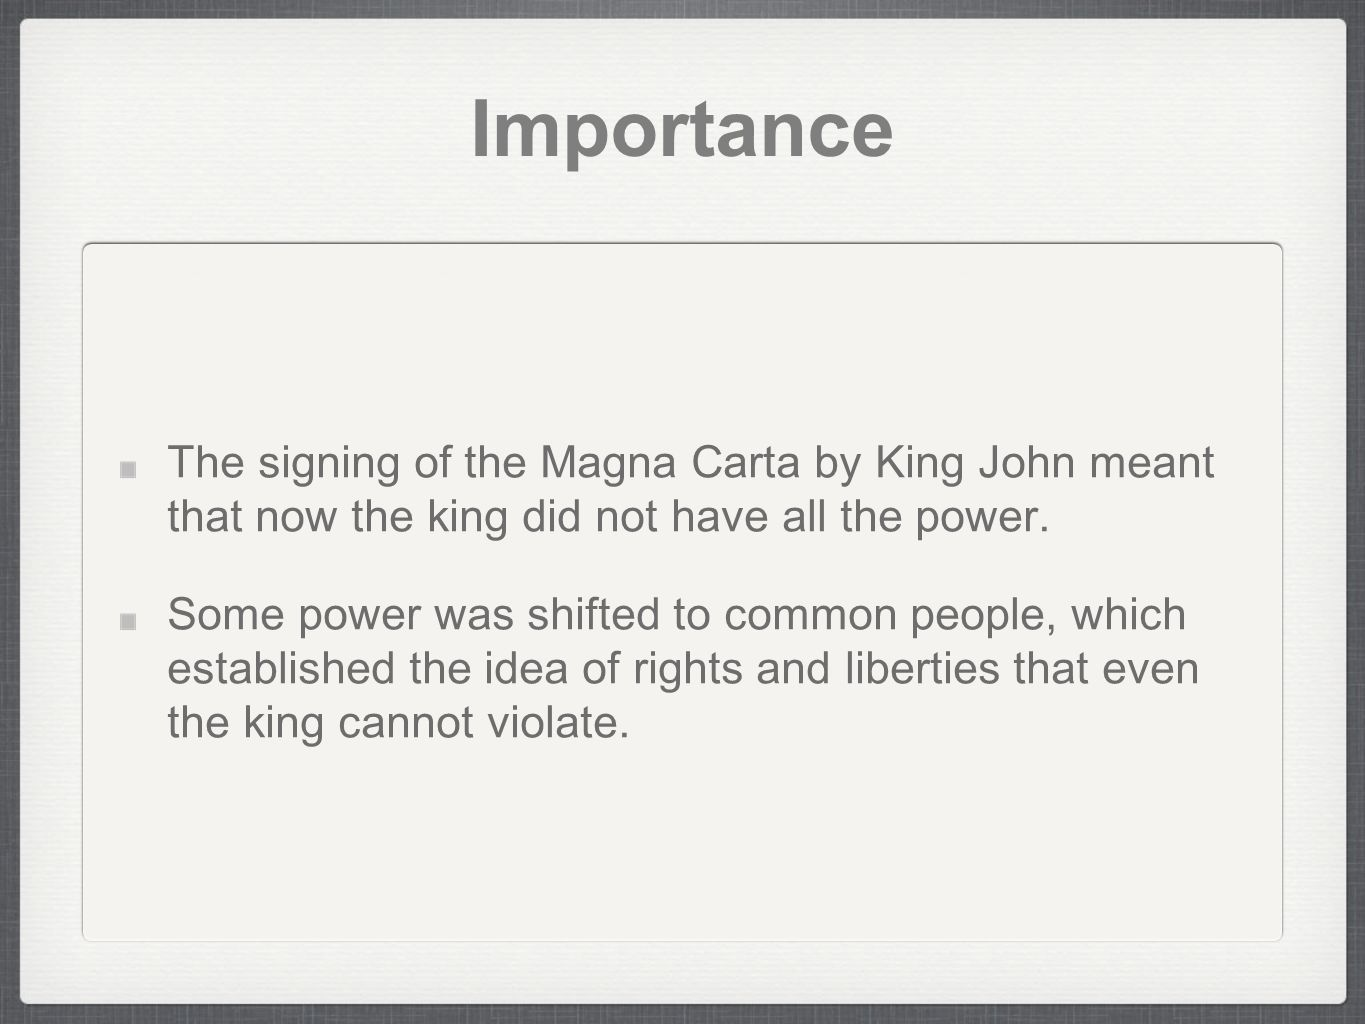 Importance The signing of the Magna Carta by King John meant that now the king did not have all the power.